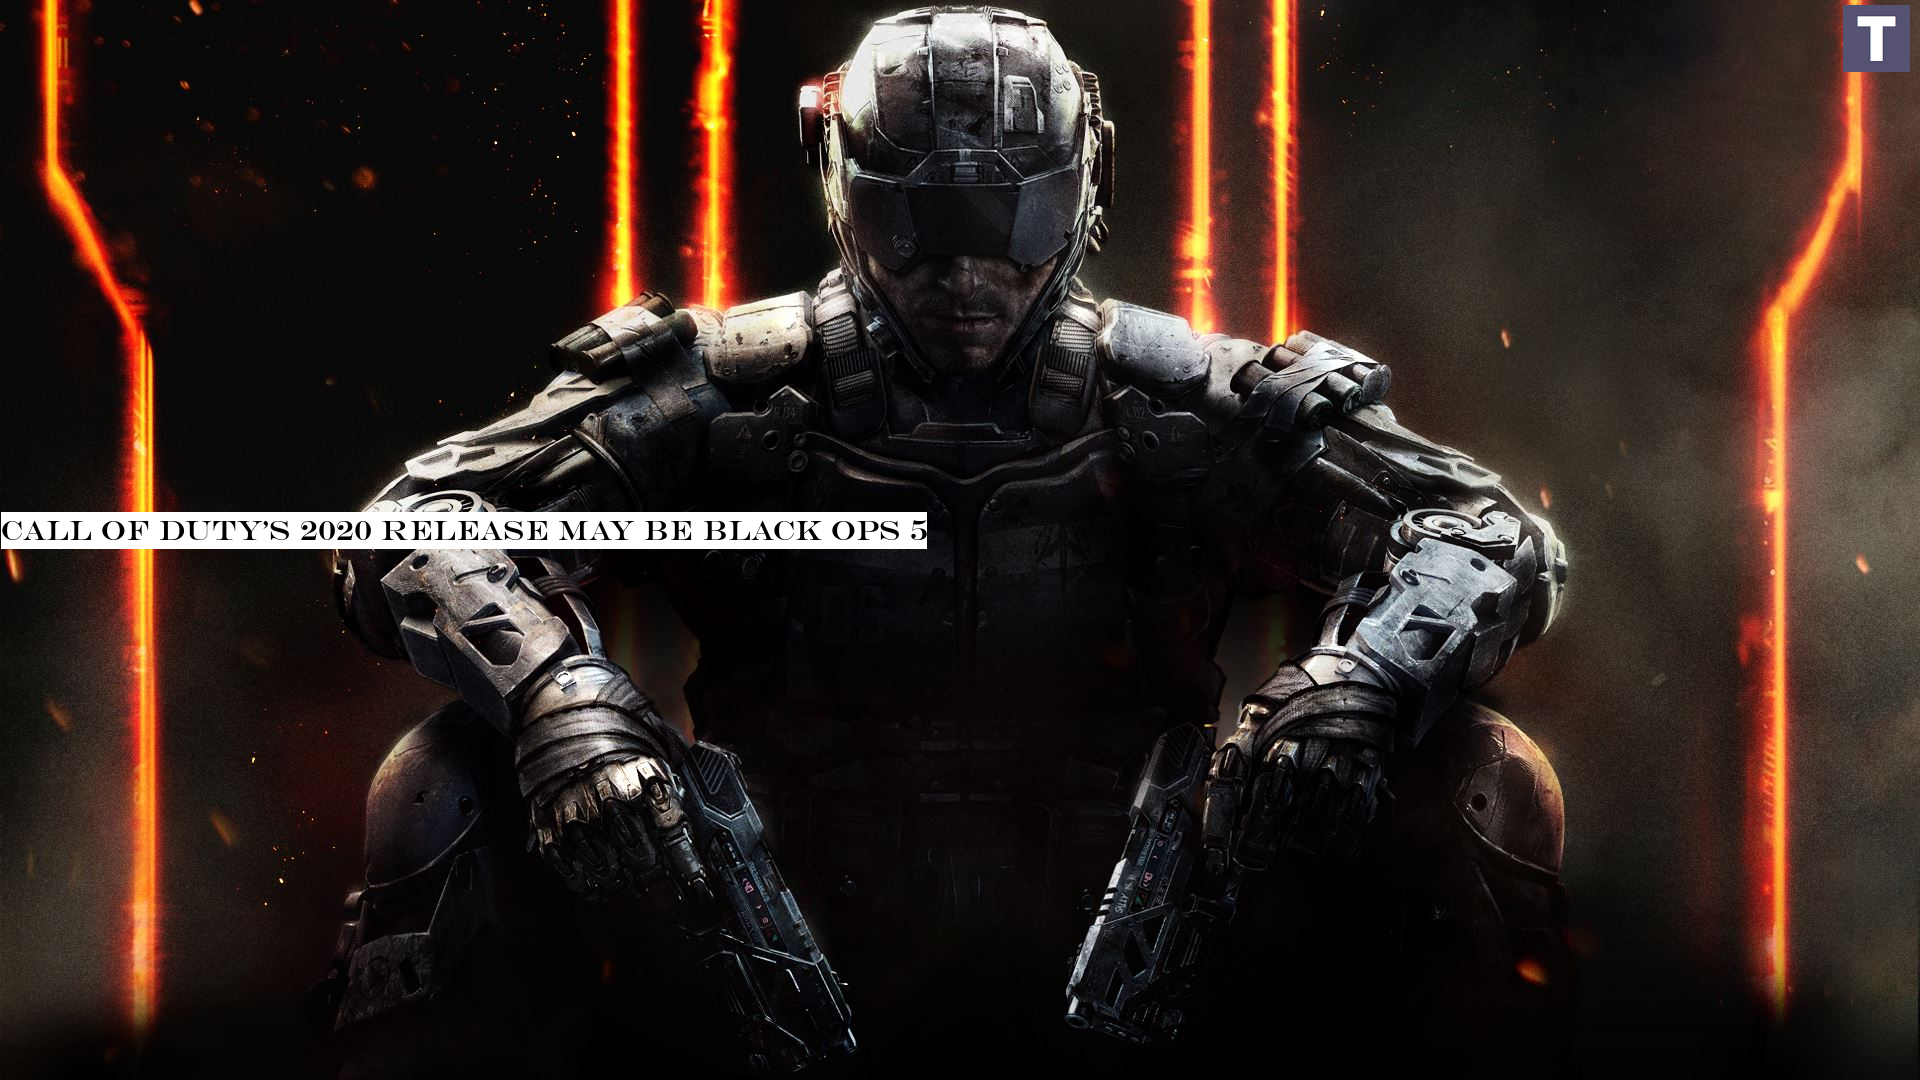 Call Of Duty S 2020 Release May Be Black Ops 5 Theindiansubcontinent